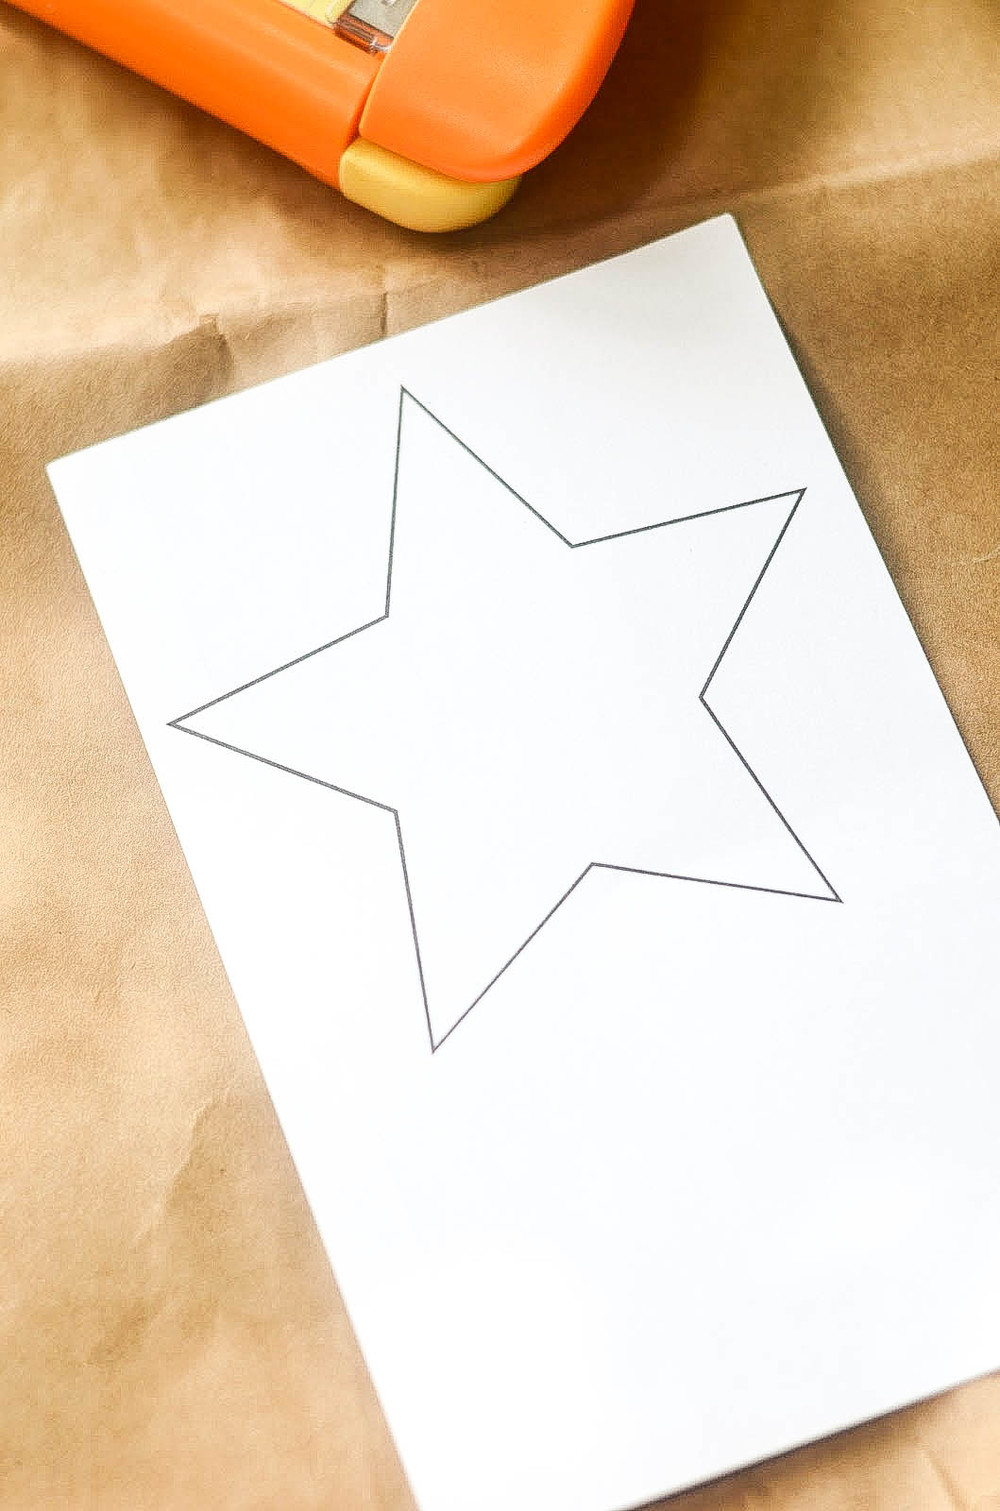 Trace, then cut out a star to make a stencil.